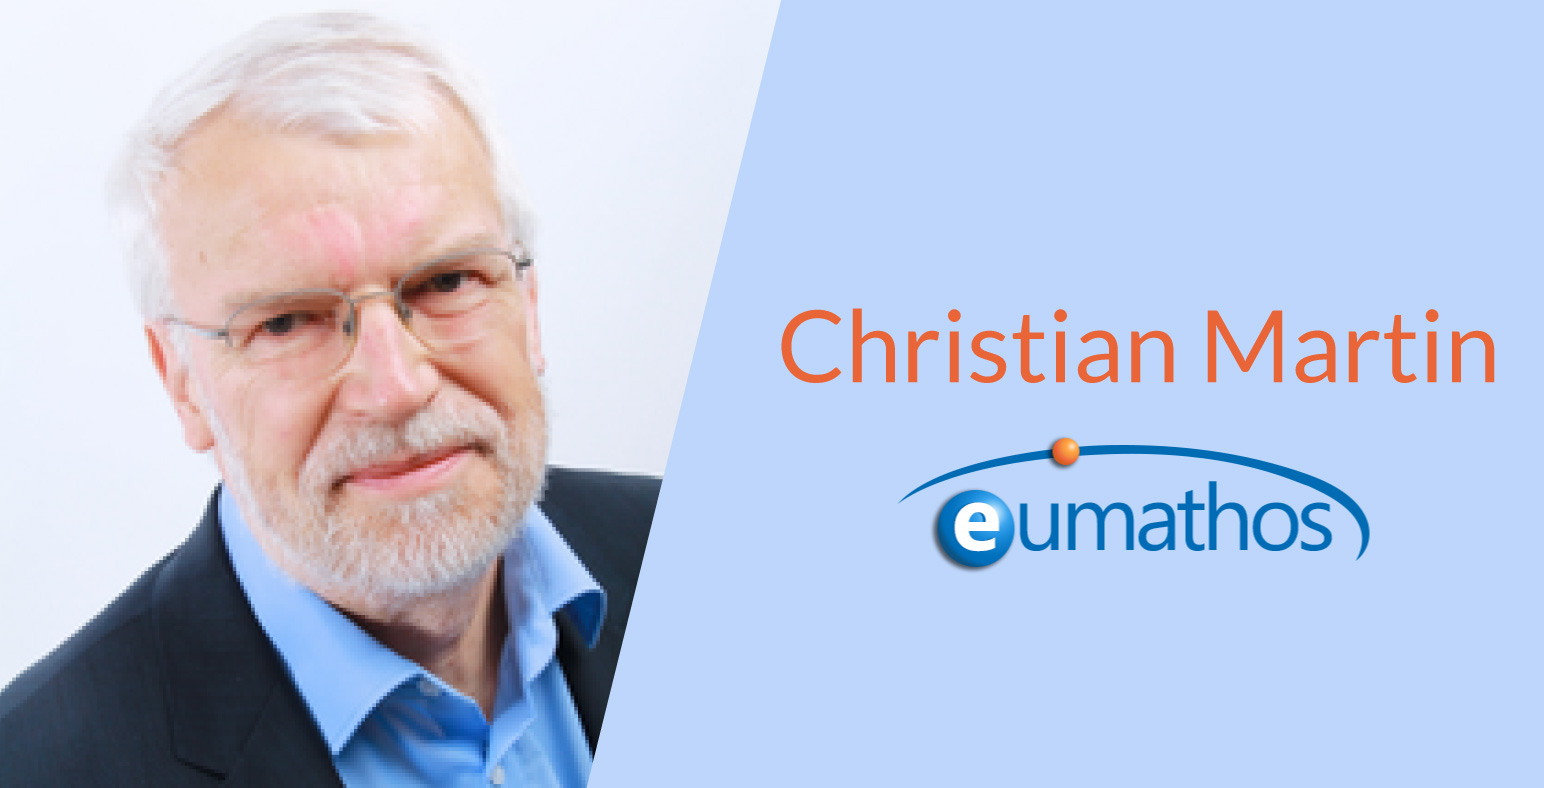 interview de christian martin eumathos